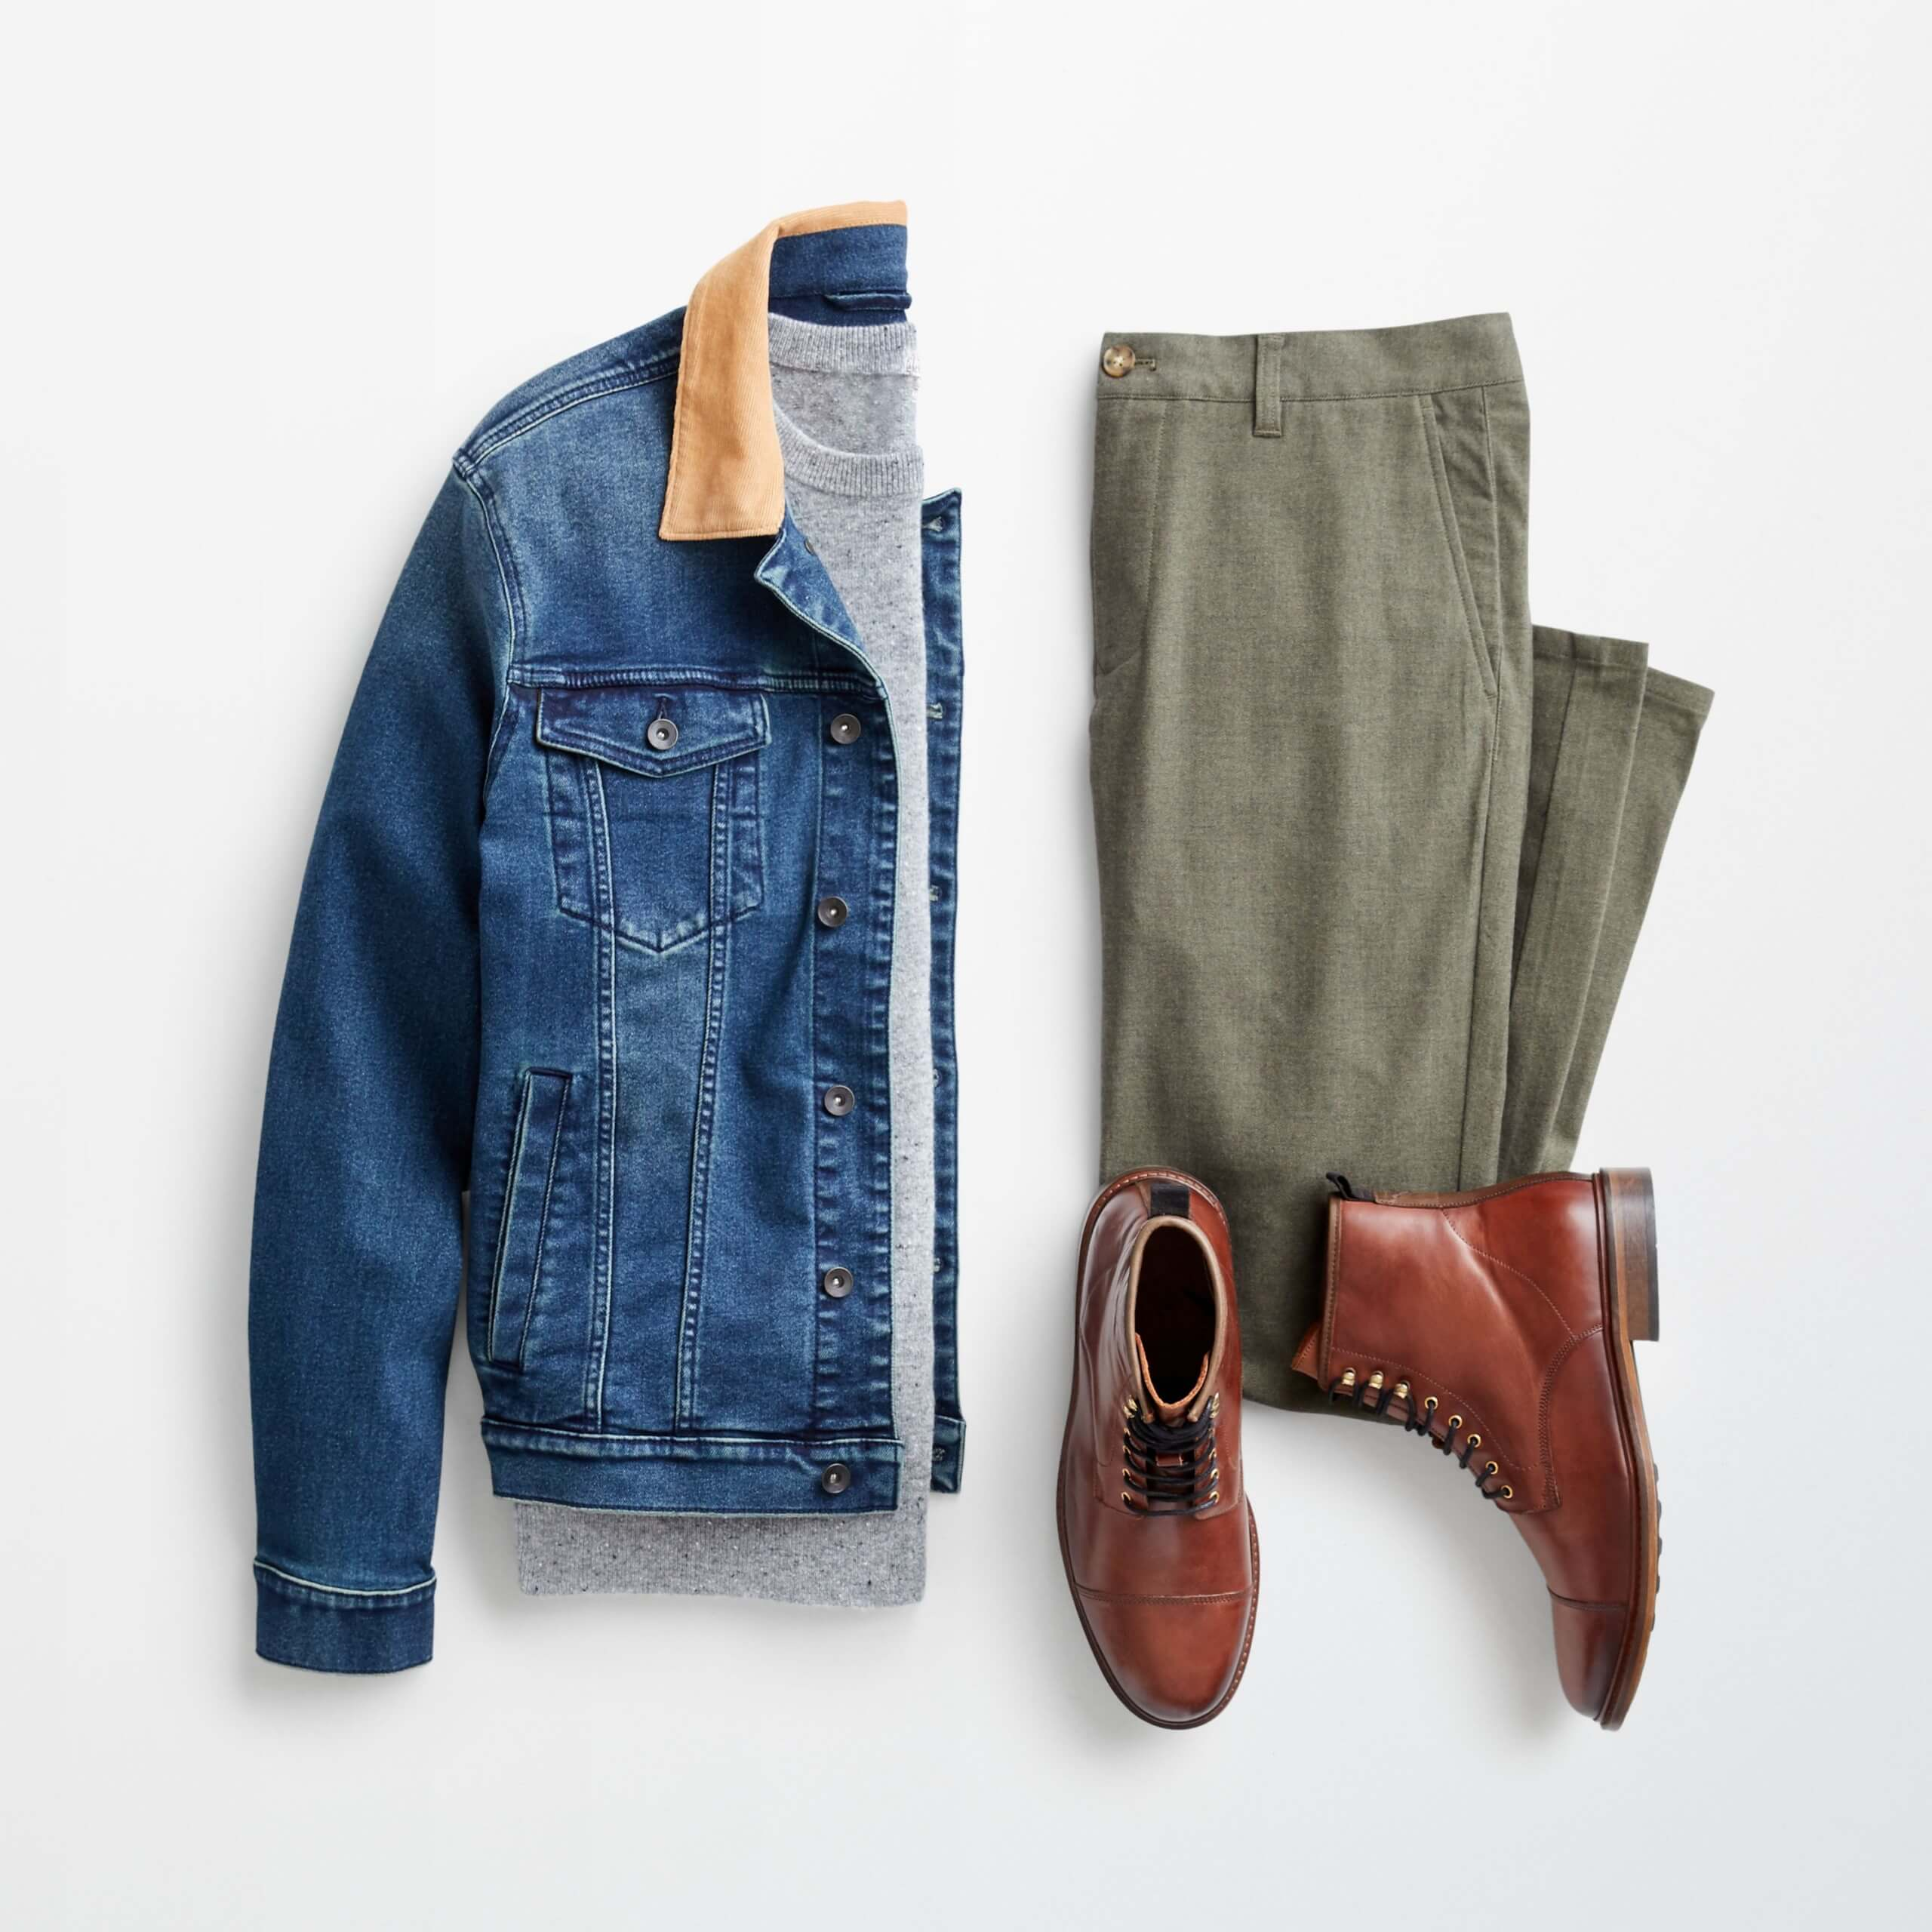 Stitch Fix jean jacket men's outfit laydown featuring blue jean jacket with a contrasting tan collar, grey T-shirt, olive pants and brown leather lace-up boots.